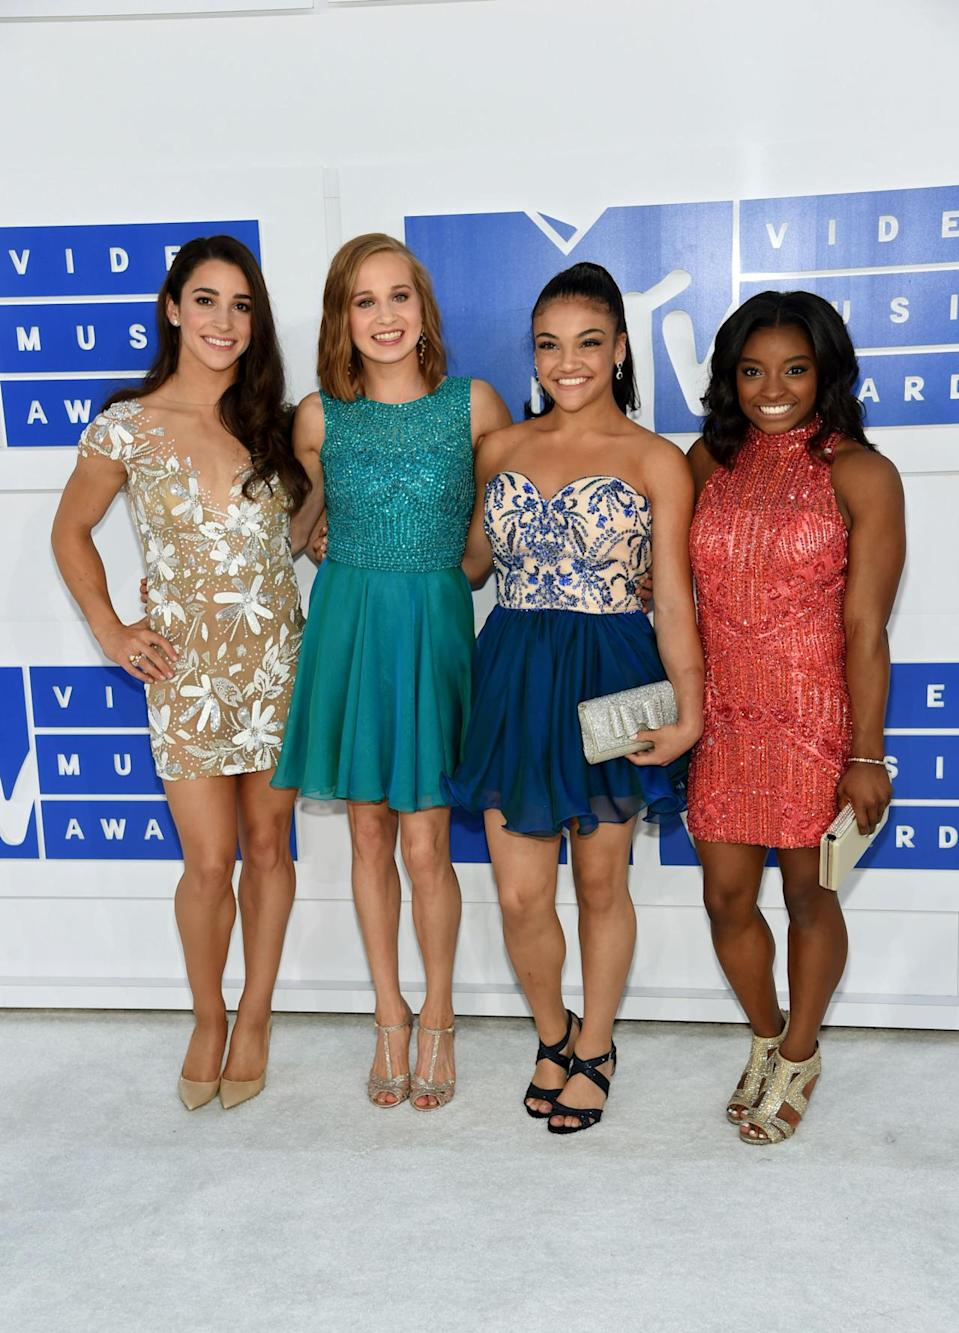 <p>Just days after rocking Rio, the Final Five (minus one, Gabby Douglas was hospitalized over the weekend — don't worry, she's OK) walked the red carpet together in dresses. Ditching their leotards and patriotic makeup, the crew looked amazing in sparkly ensembles. <i>(Photo: Getty Images)</i></p>